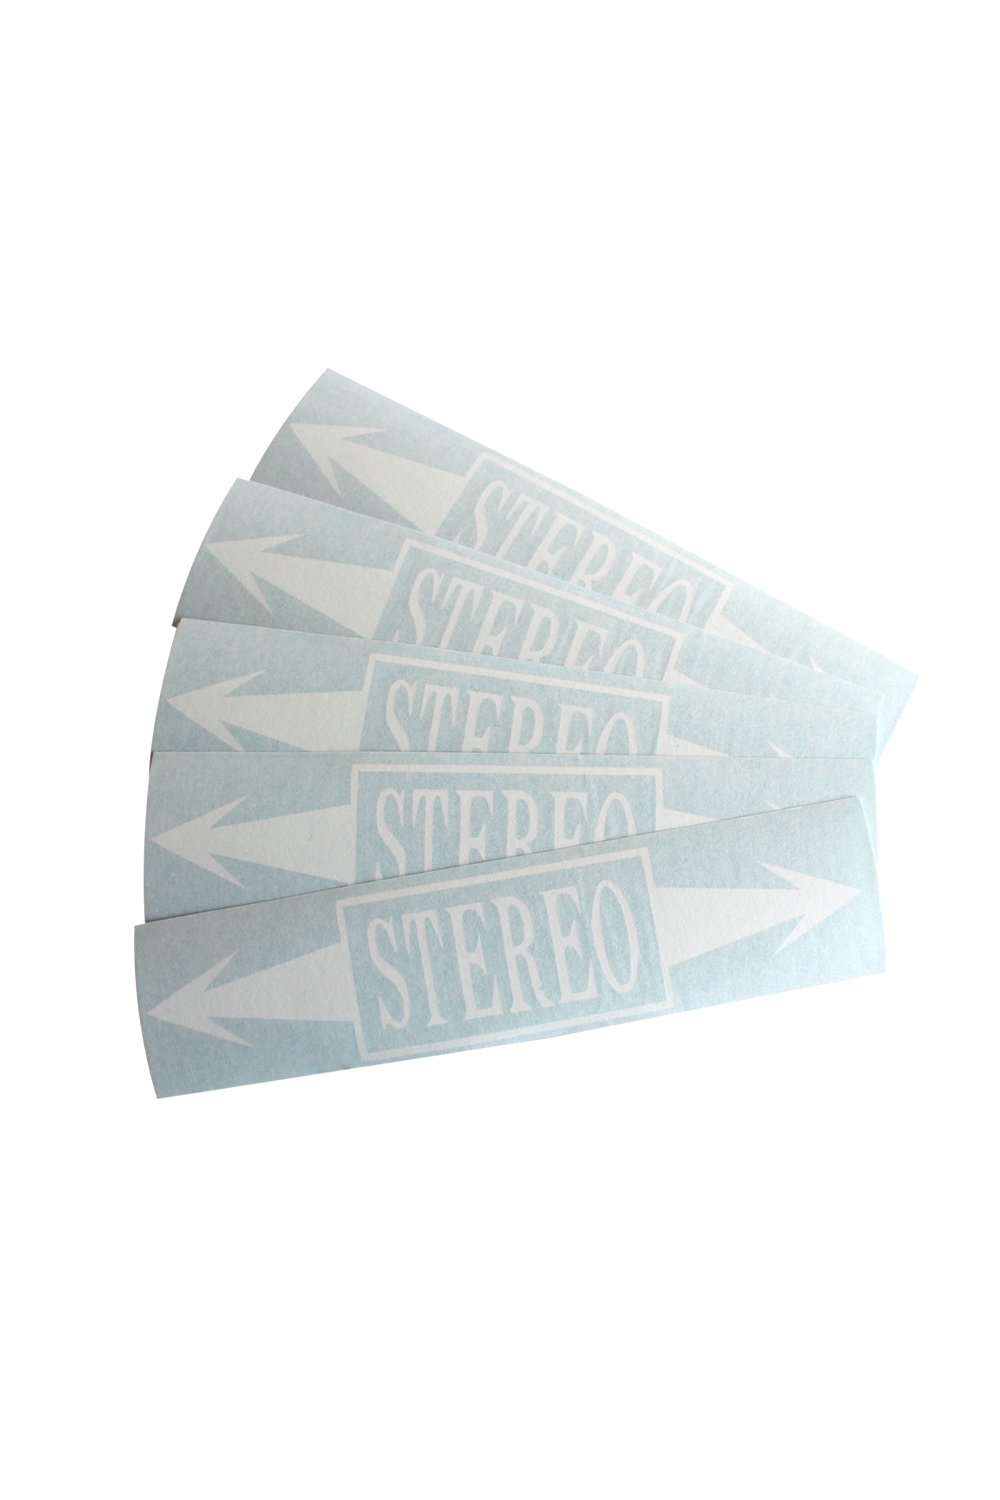 Stereo Arrows decal